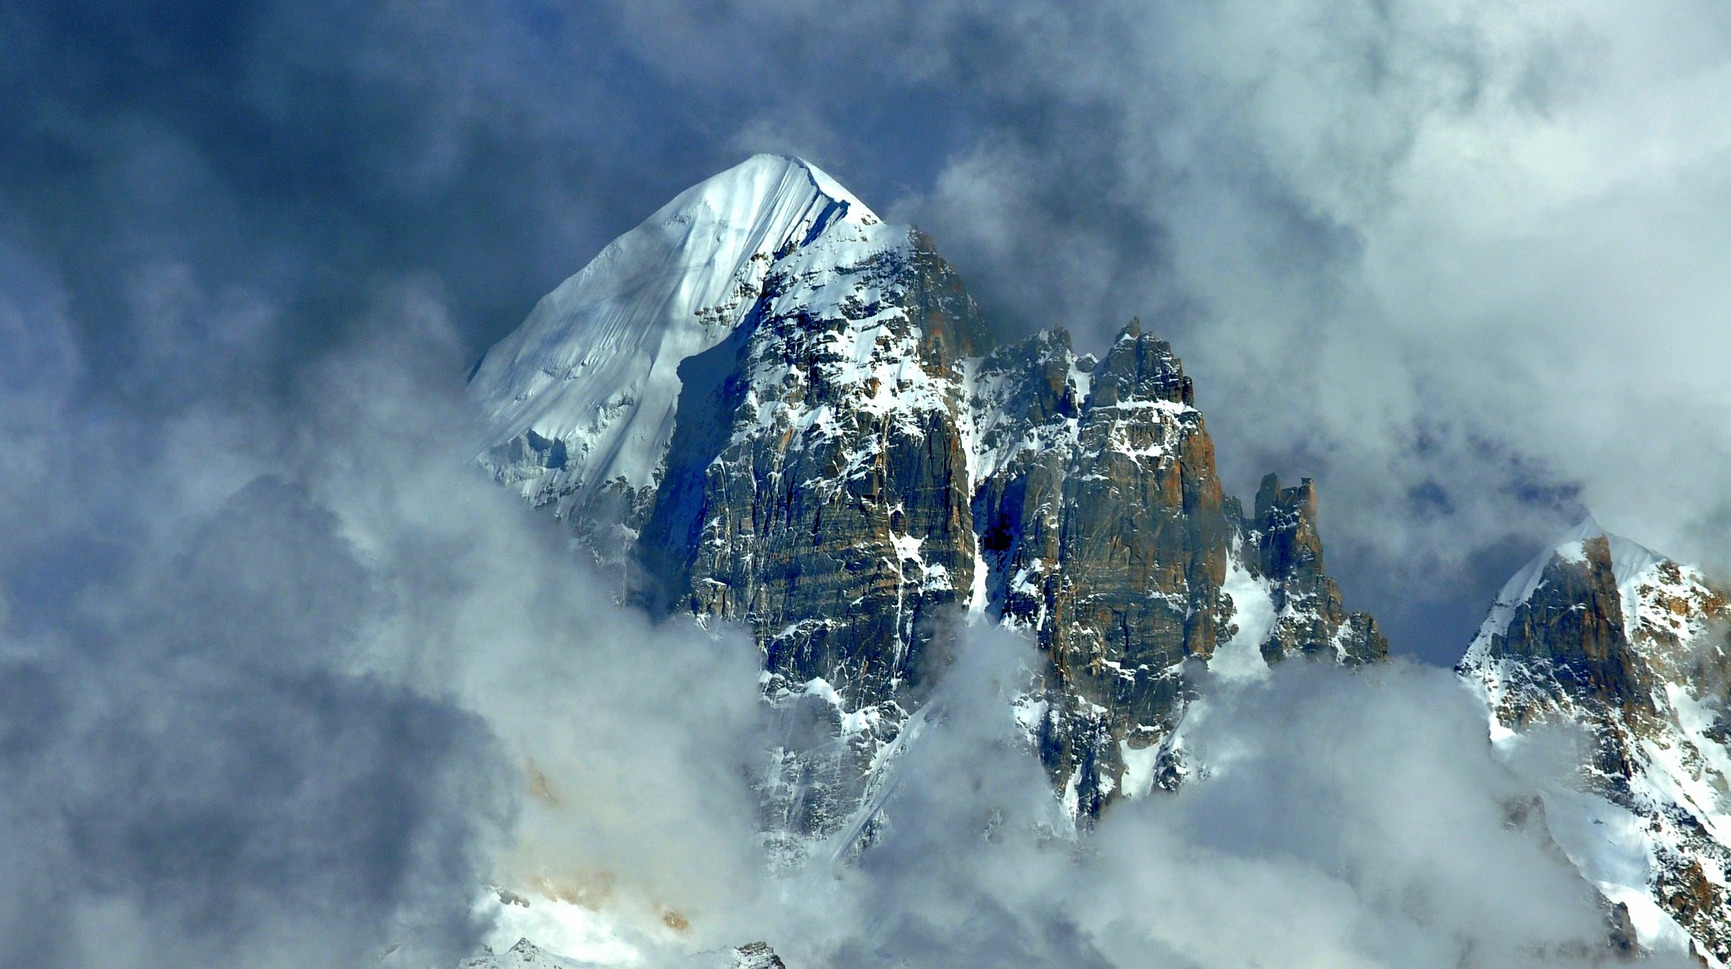 Misty mountains, photo by Pixabay user himalayadestination: https://pixabay.com/photos/mountains-climb-mountaineer-3970320/